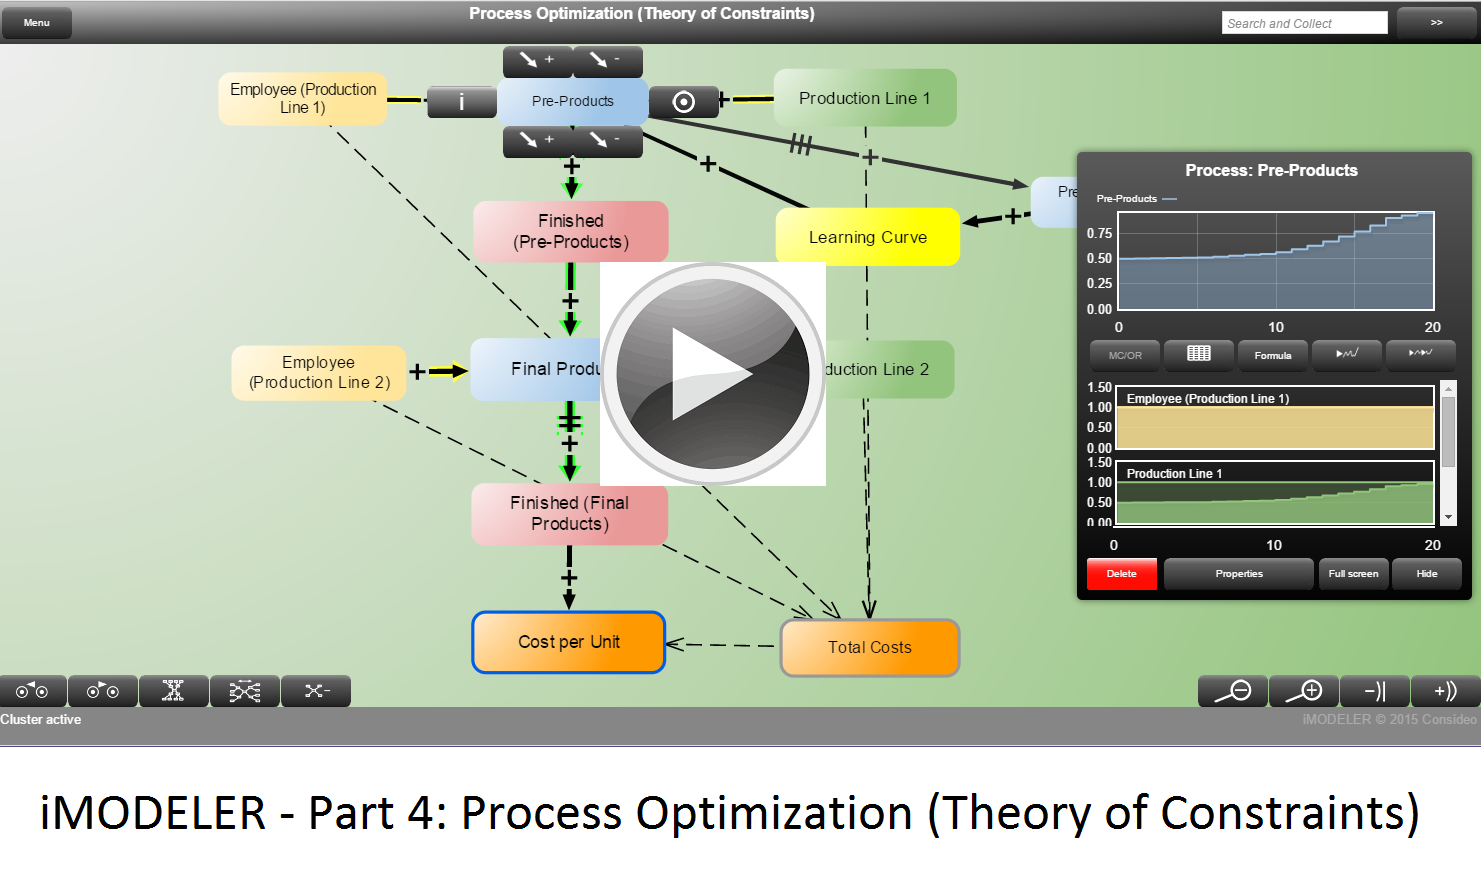 iMODELER - Part 4: Process Optimization (Theory of Constraints)